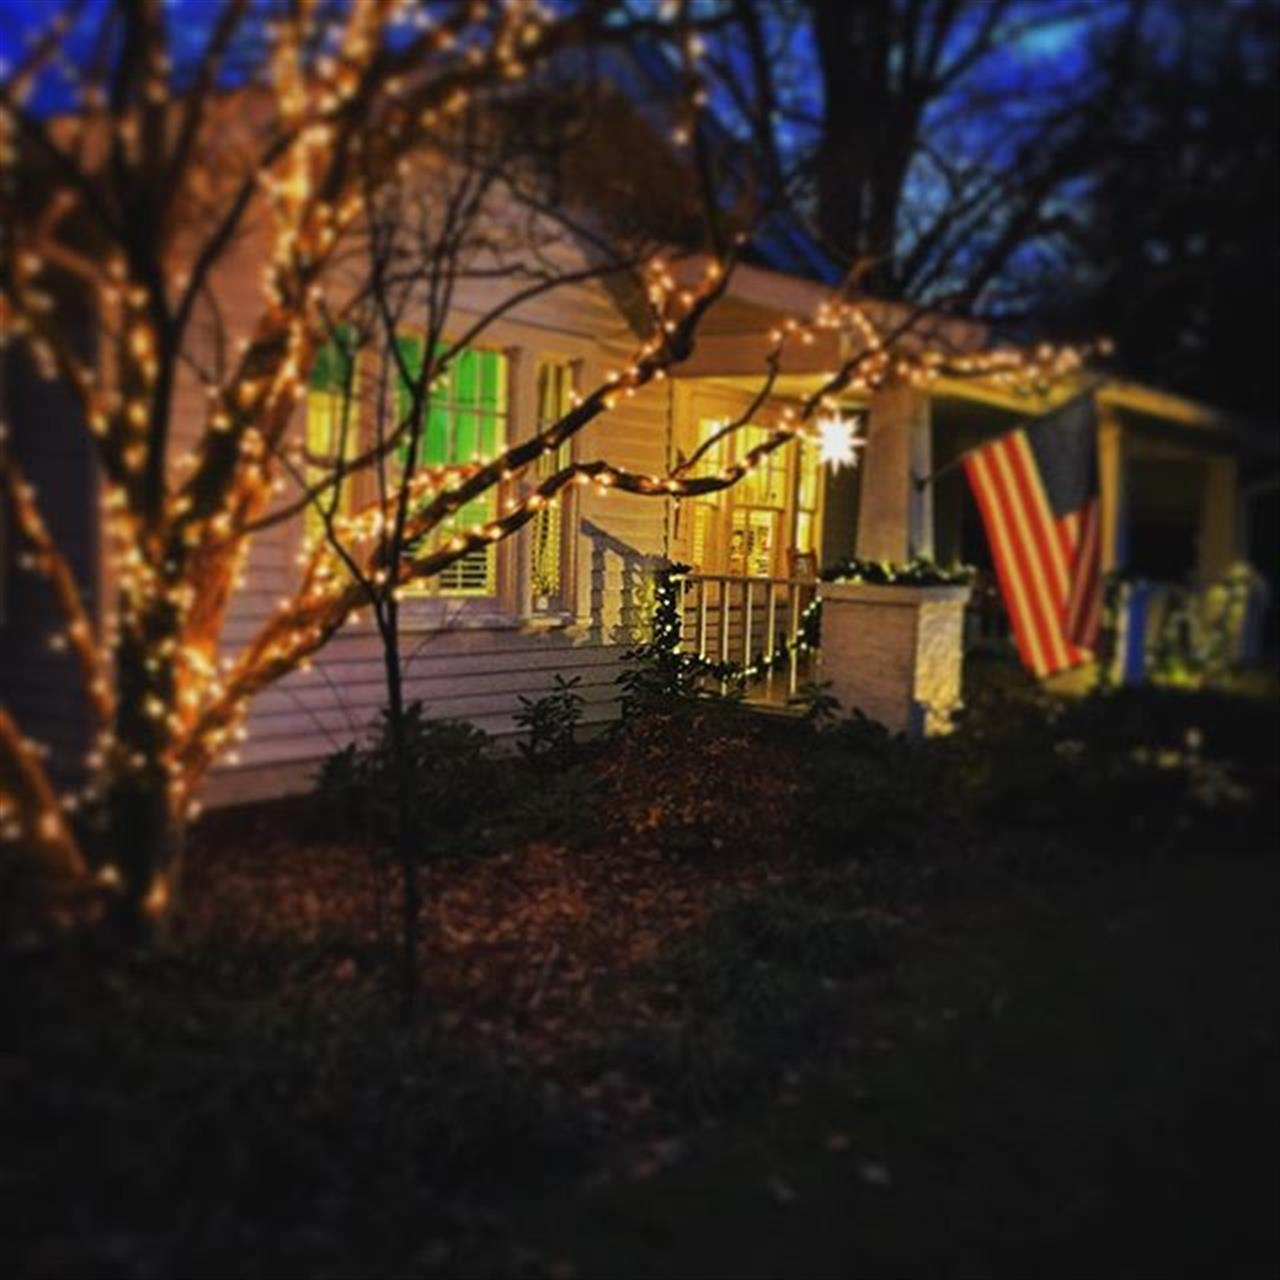 #WSNC #leadingrelocal #lrbhomes #december2015